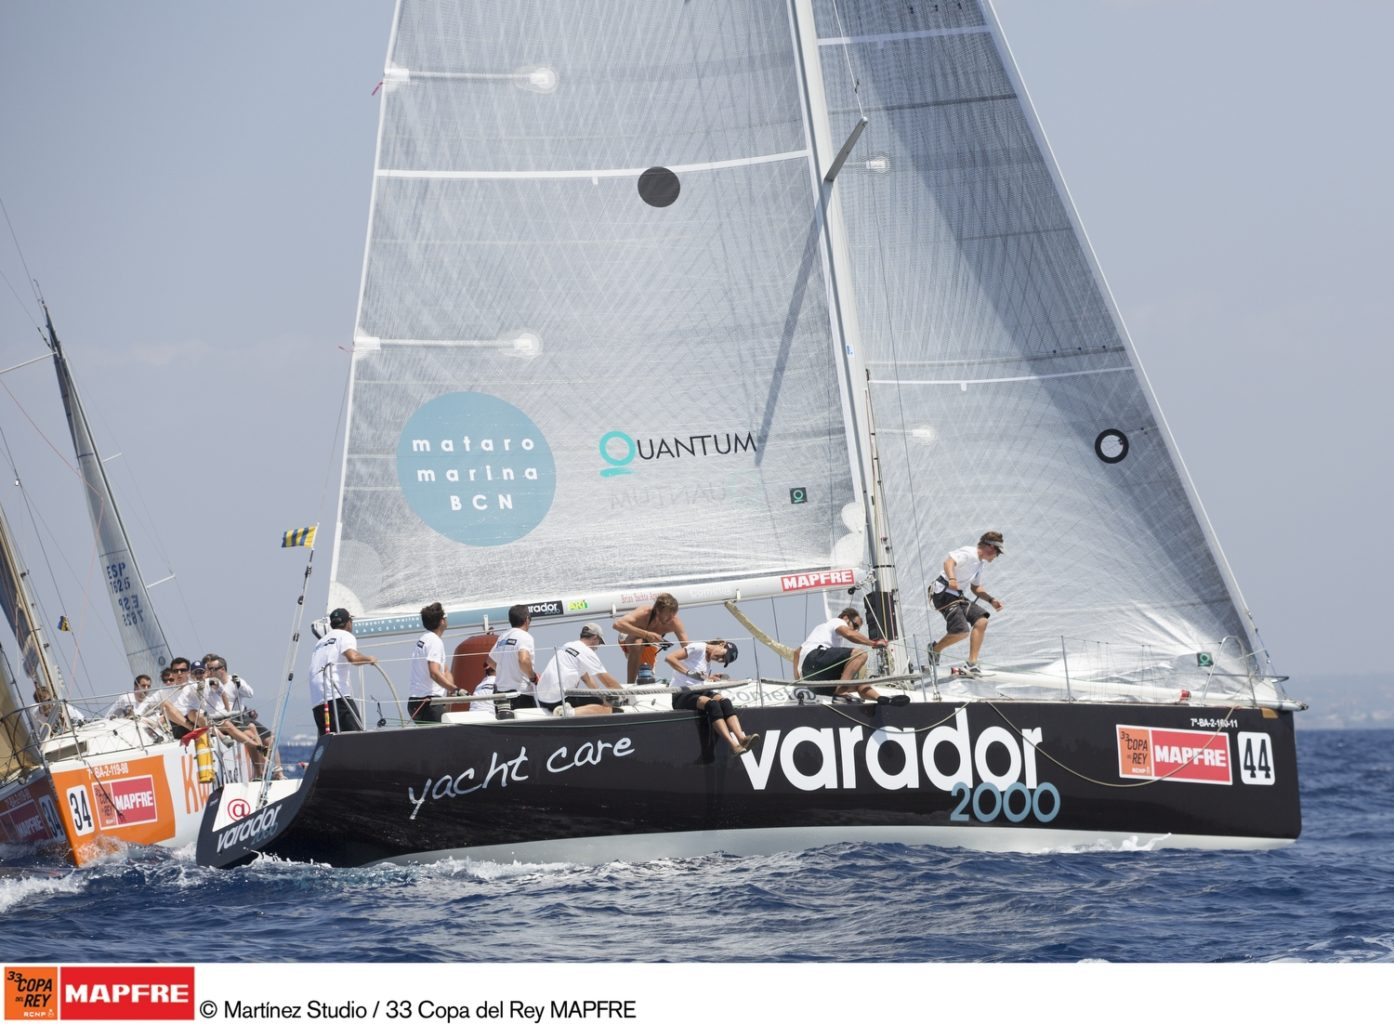 The Varador 2000 in third place after the first day of racing